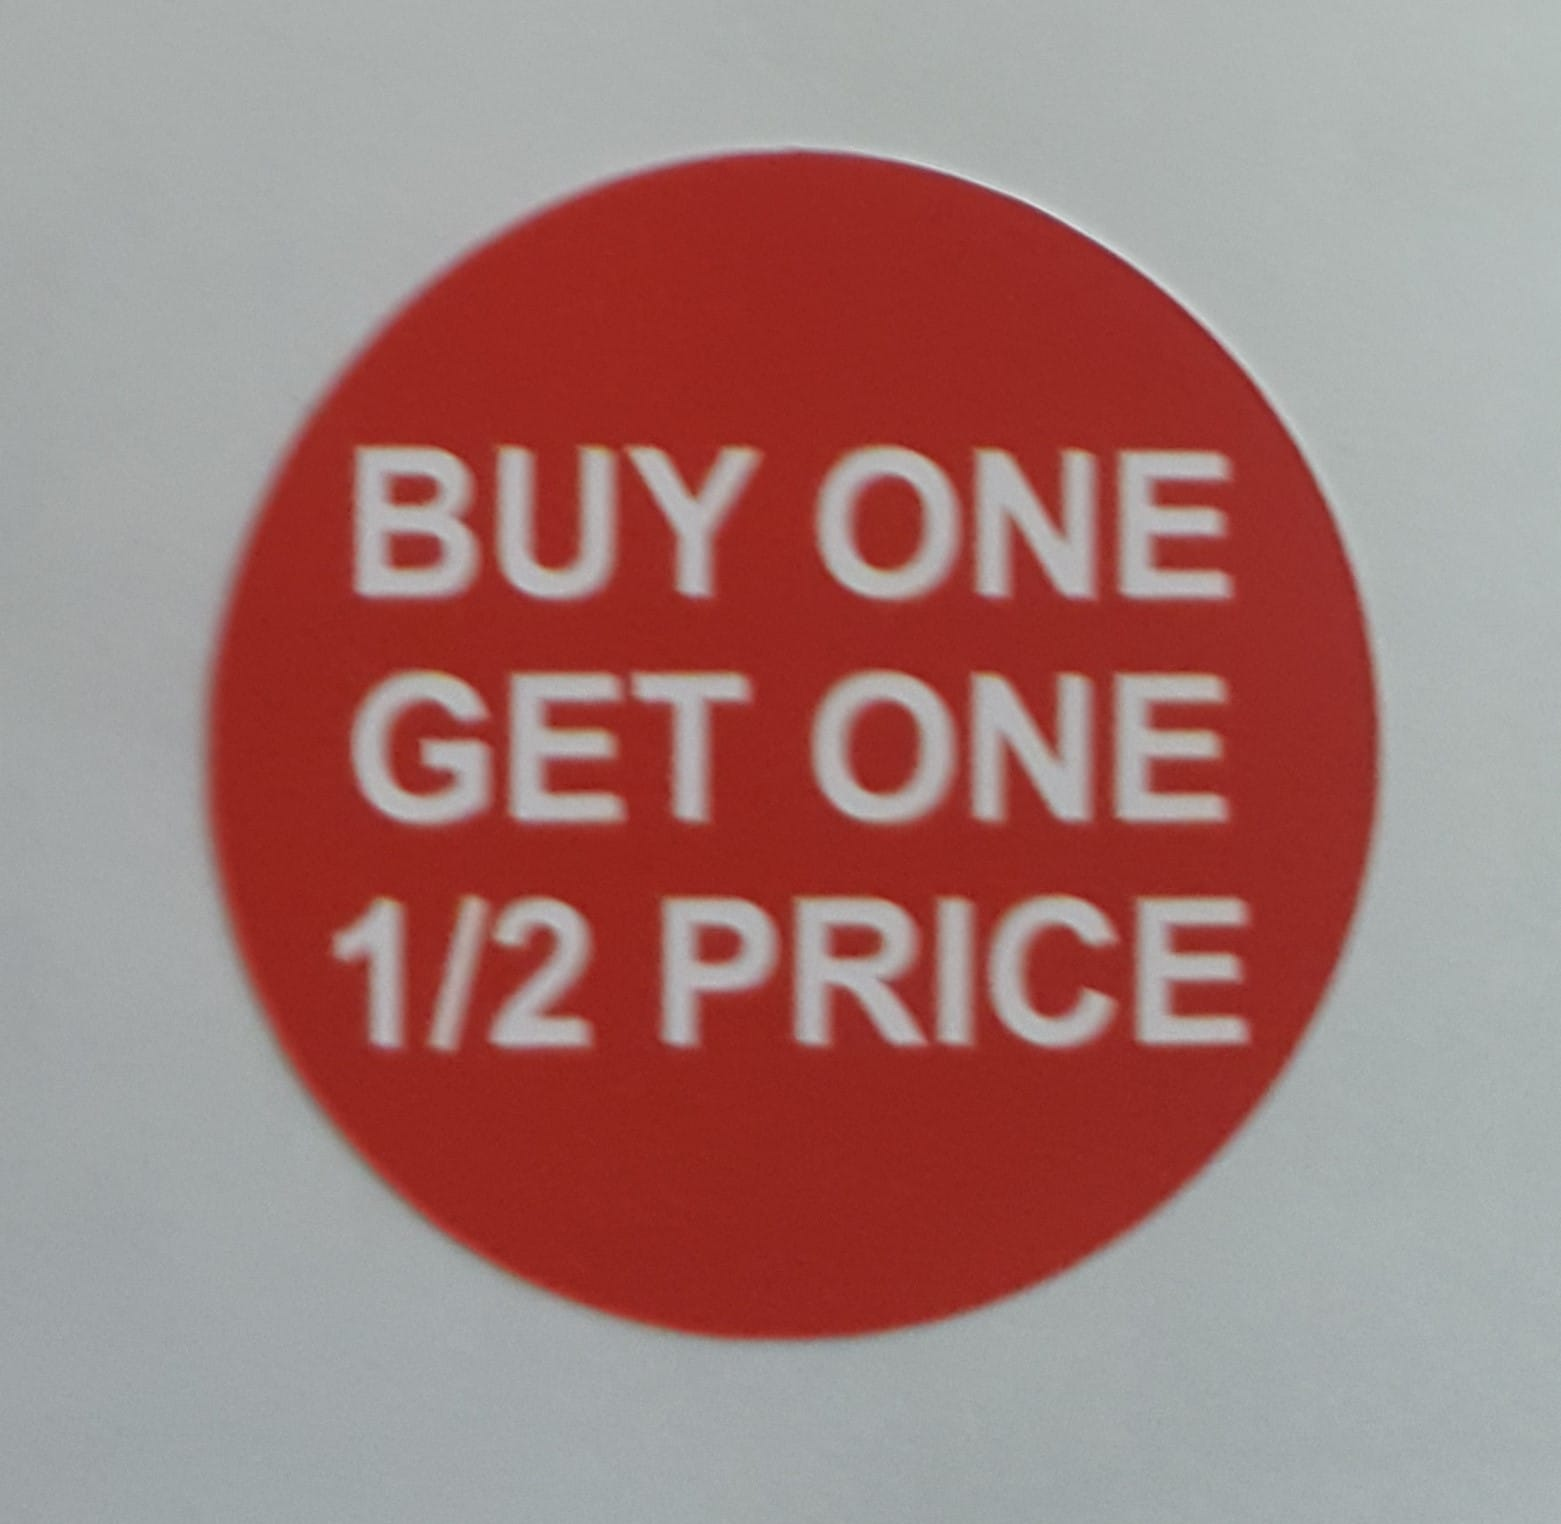 Buy 1 get 1 half price stickers